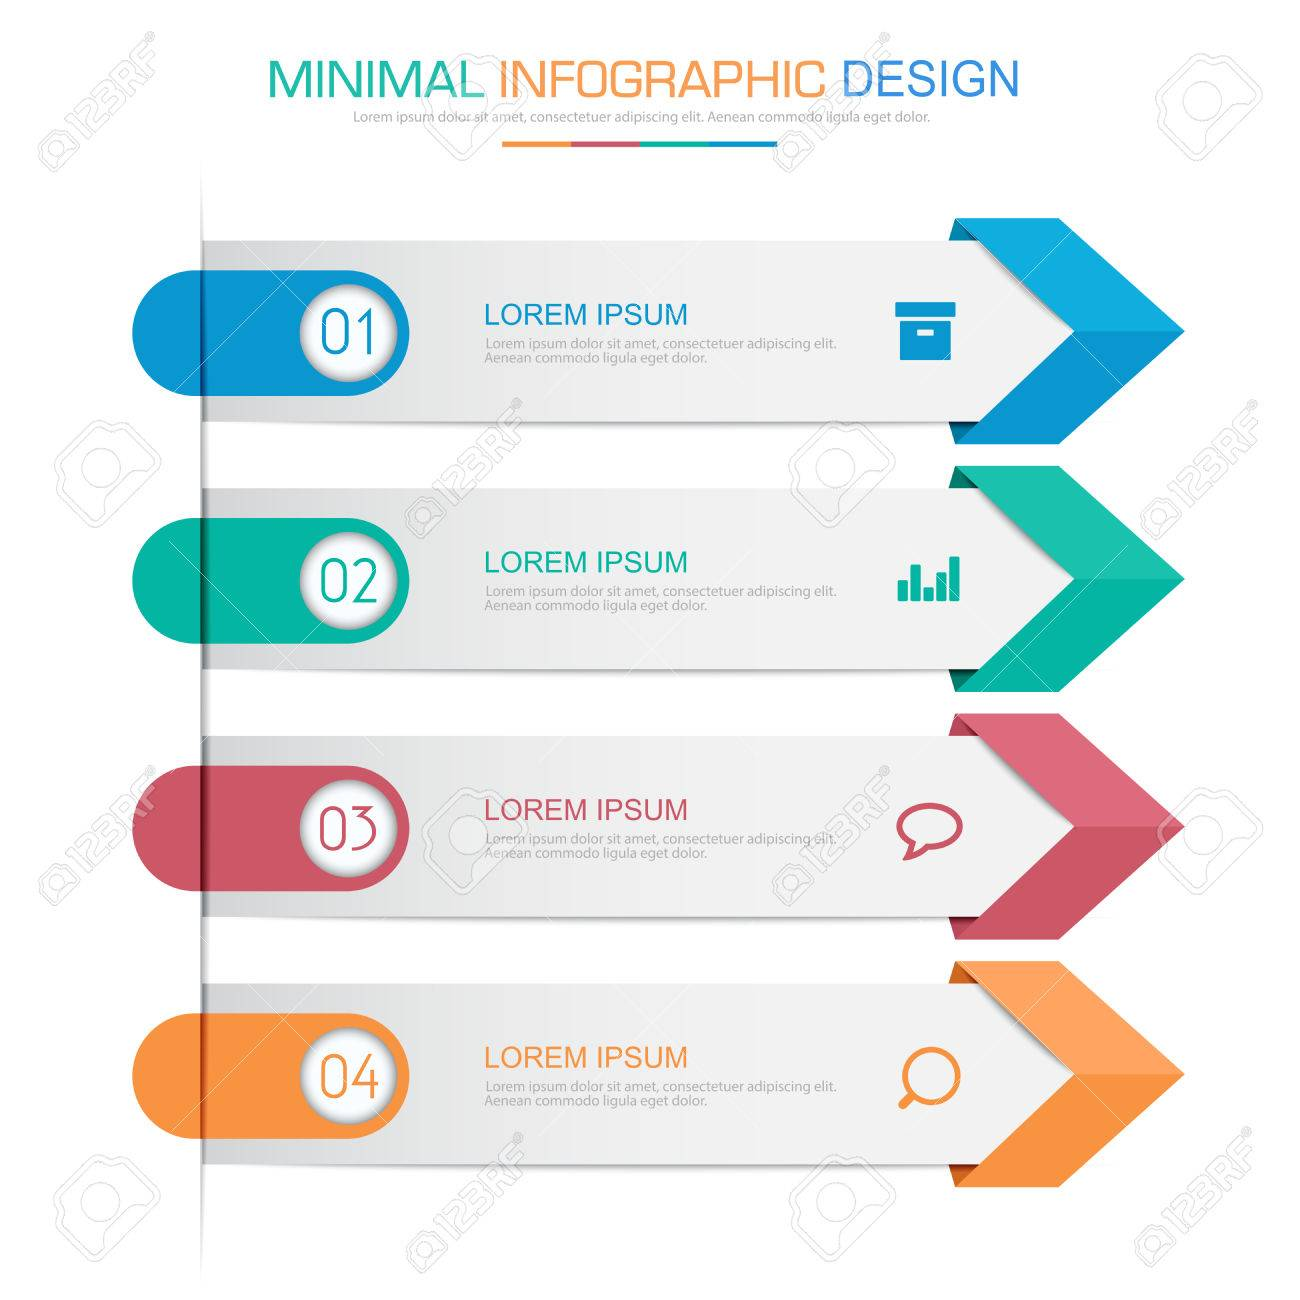 Infographic elements with business icon on full color background infographic elements with business icon on full color background circle process or steps and options workflow ccuart Choice Image